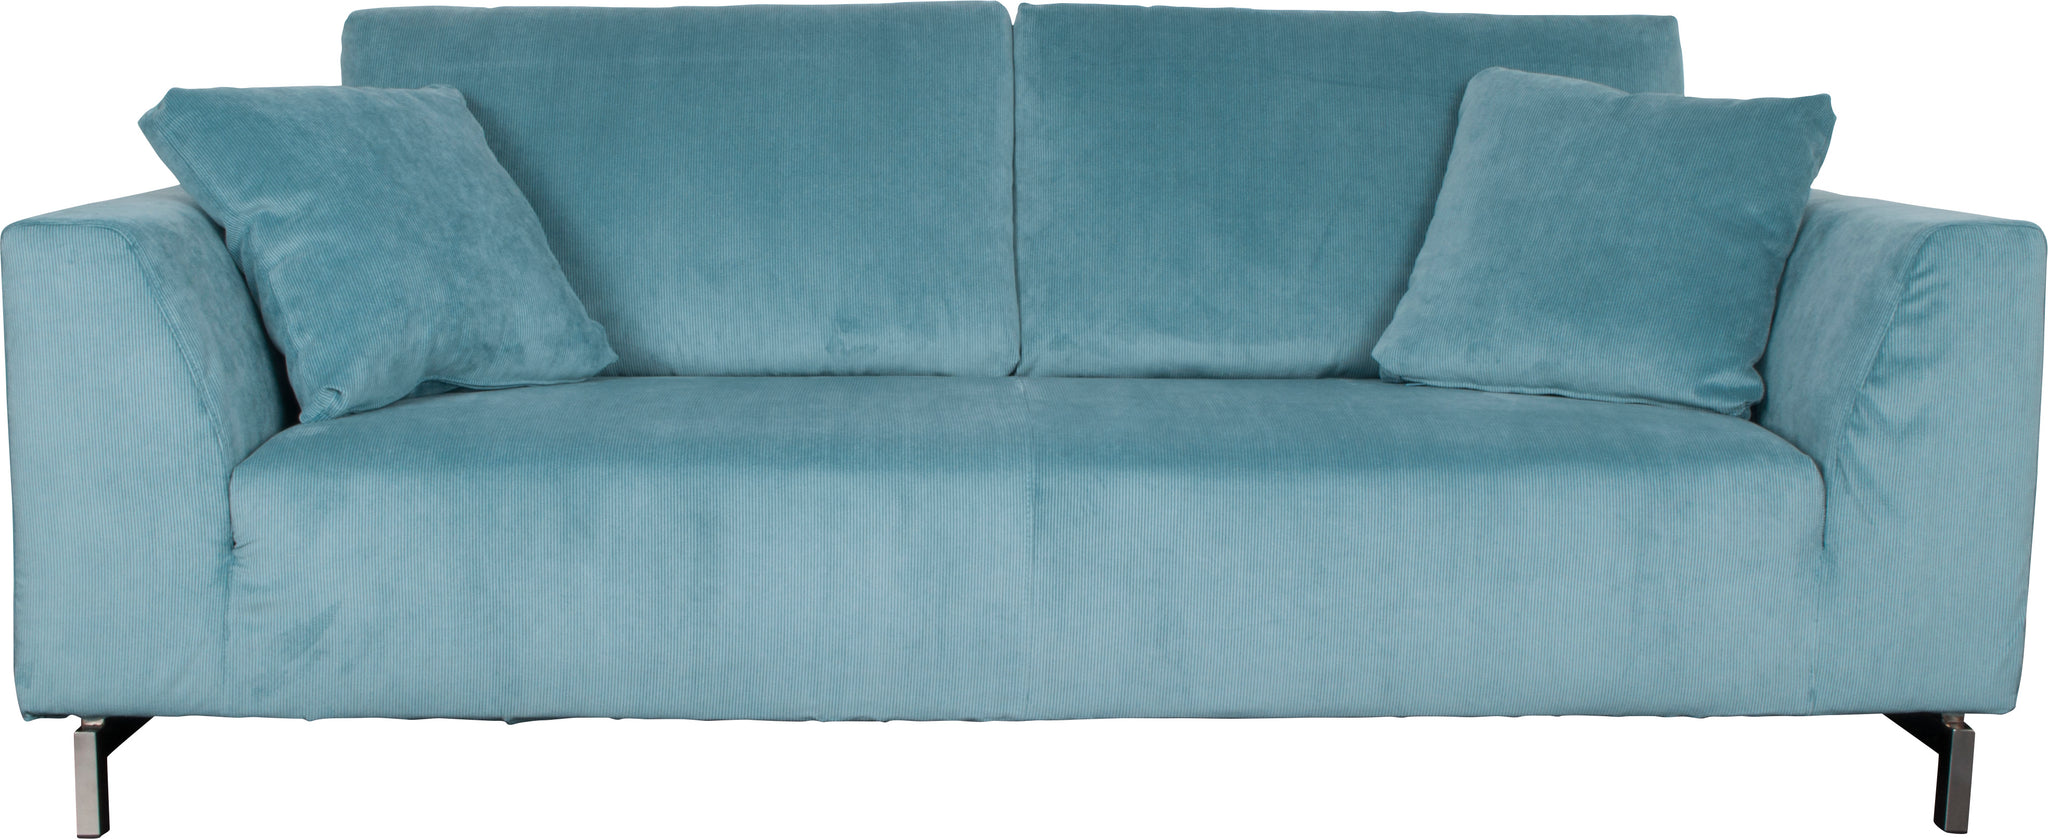 Dragon Rib Sofa - Paris-Sete